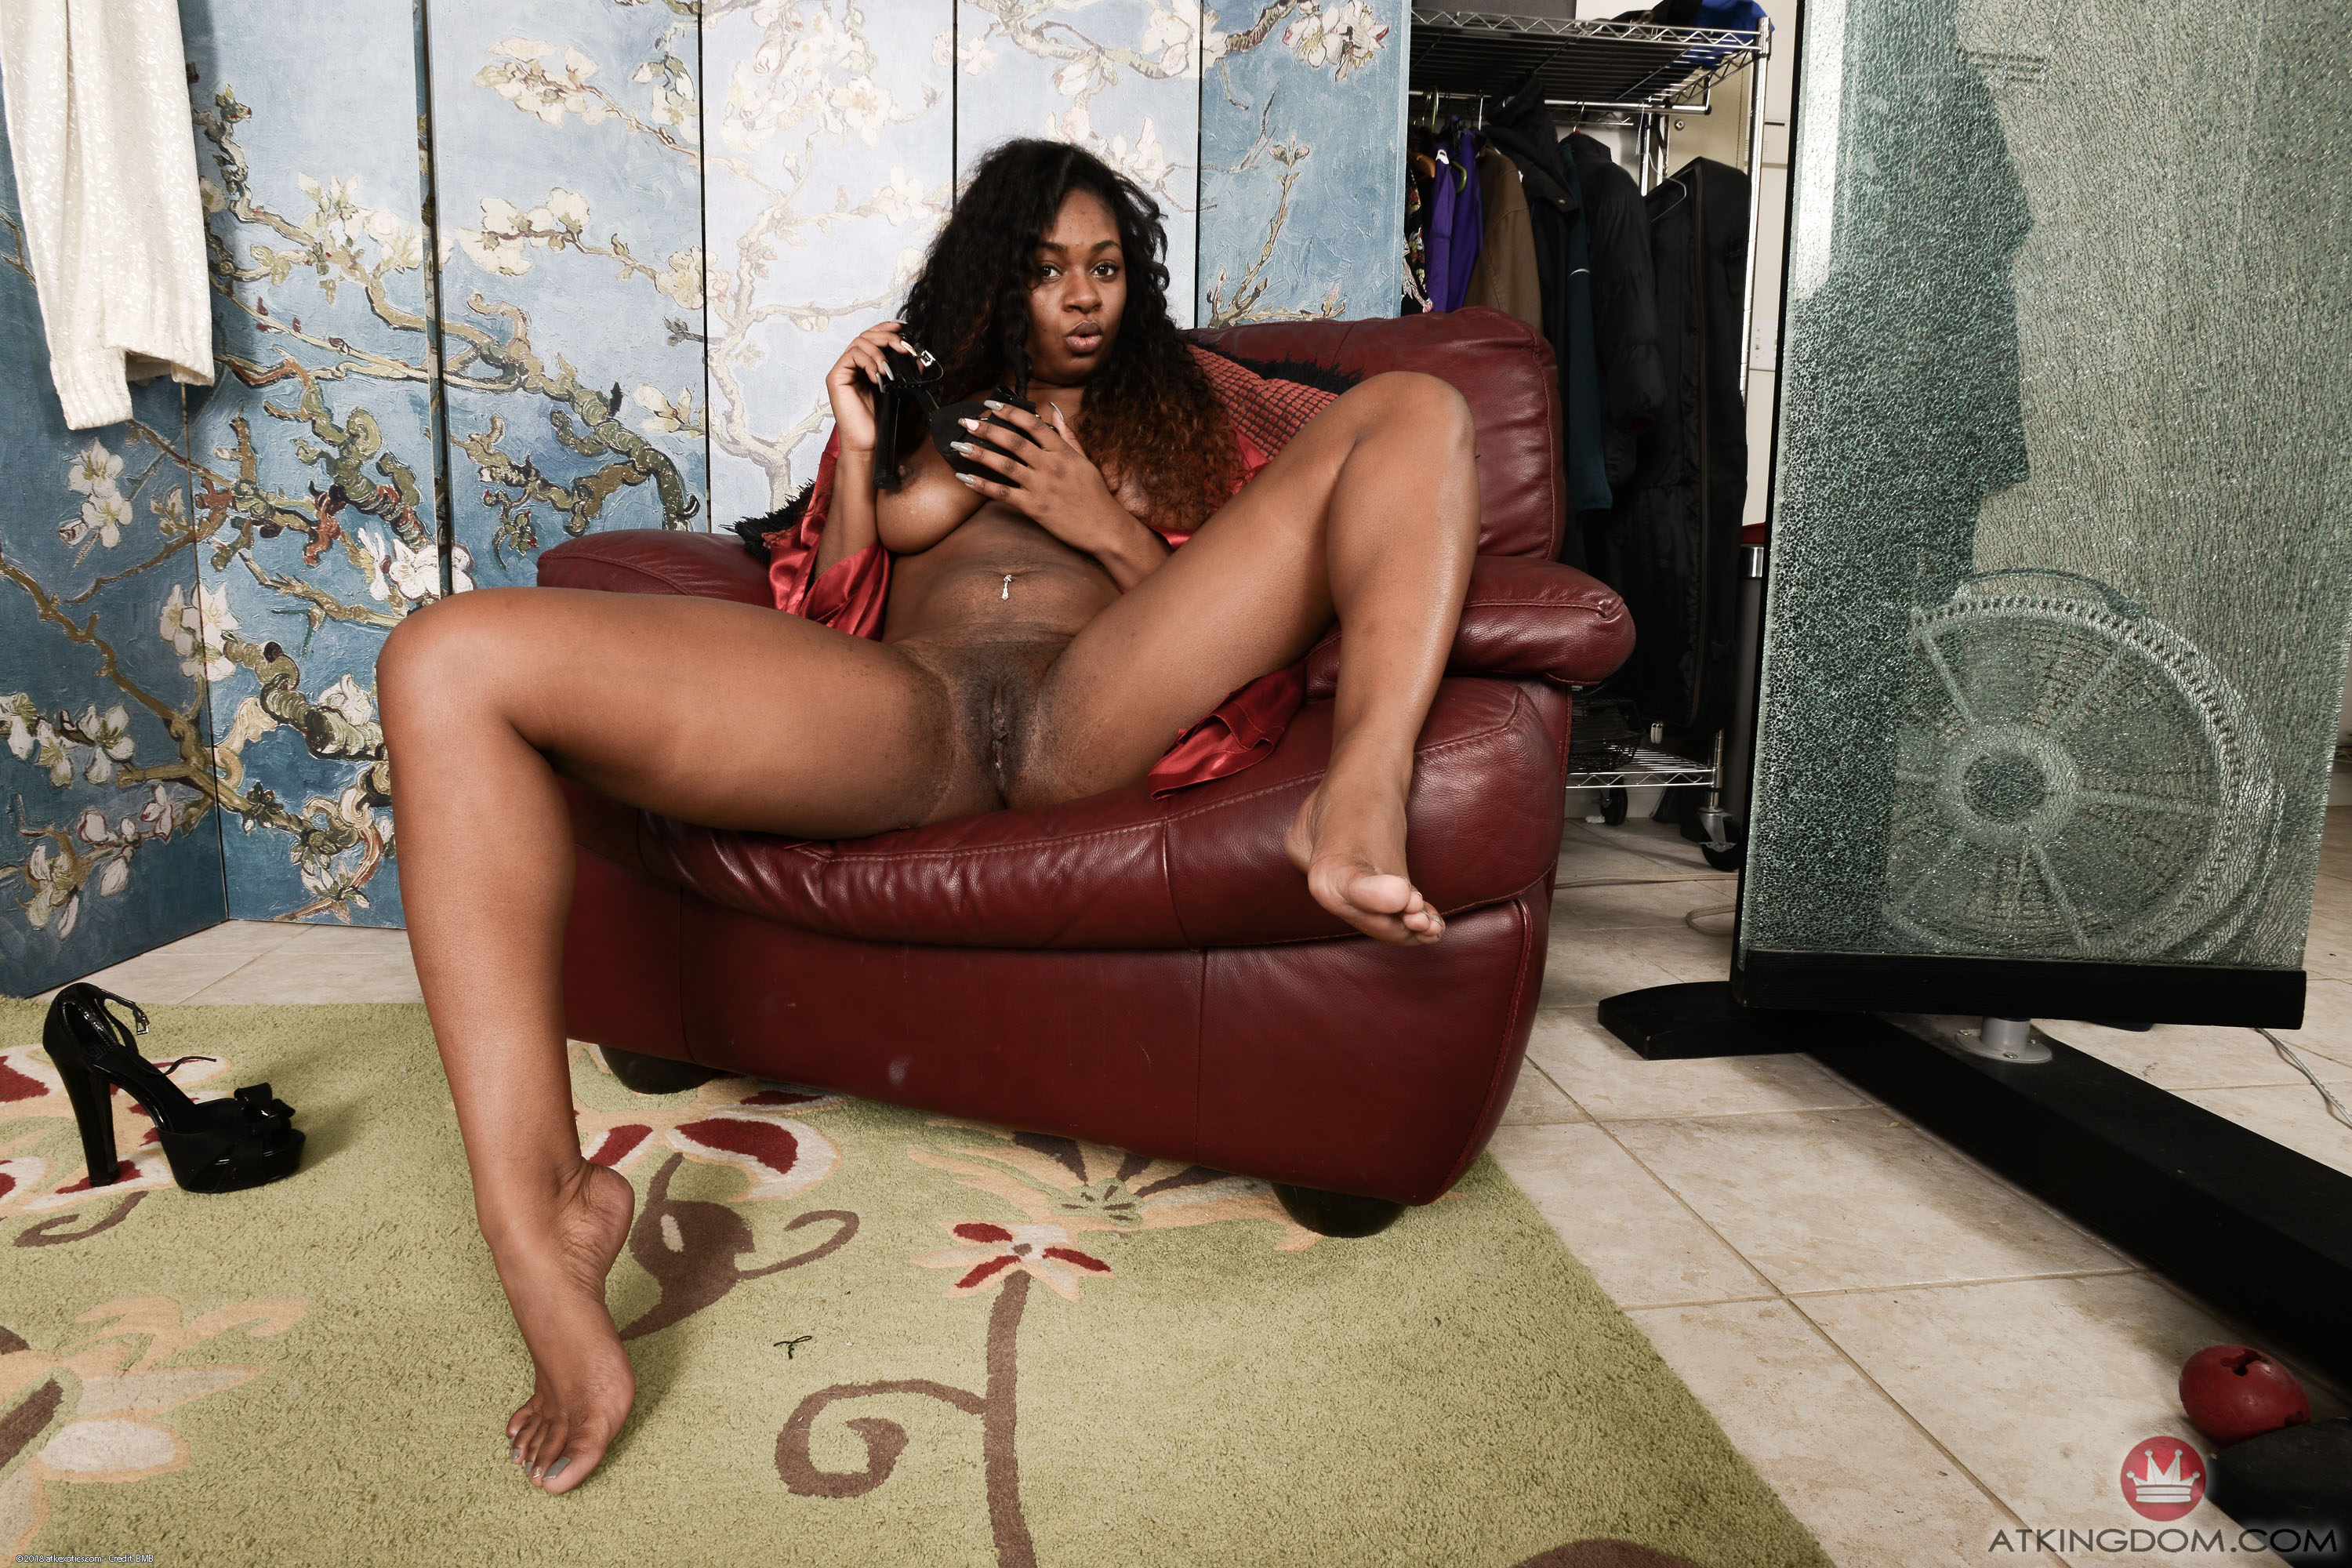 For nude ebony dream girl accept